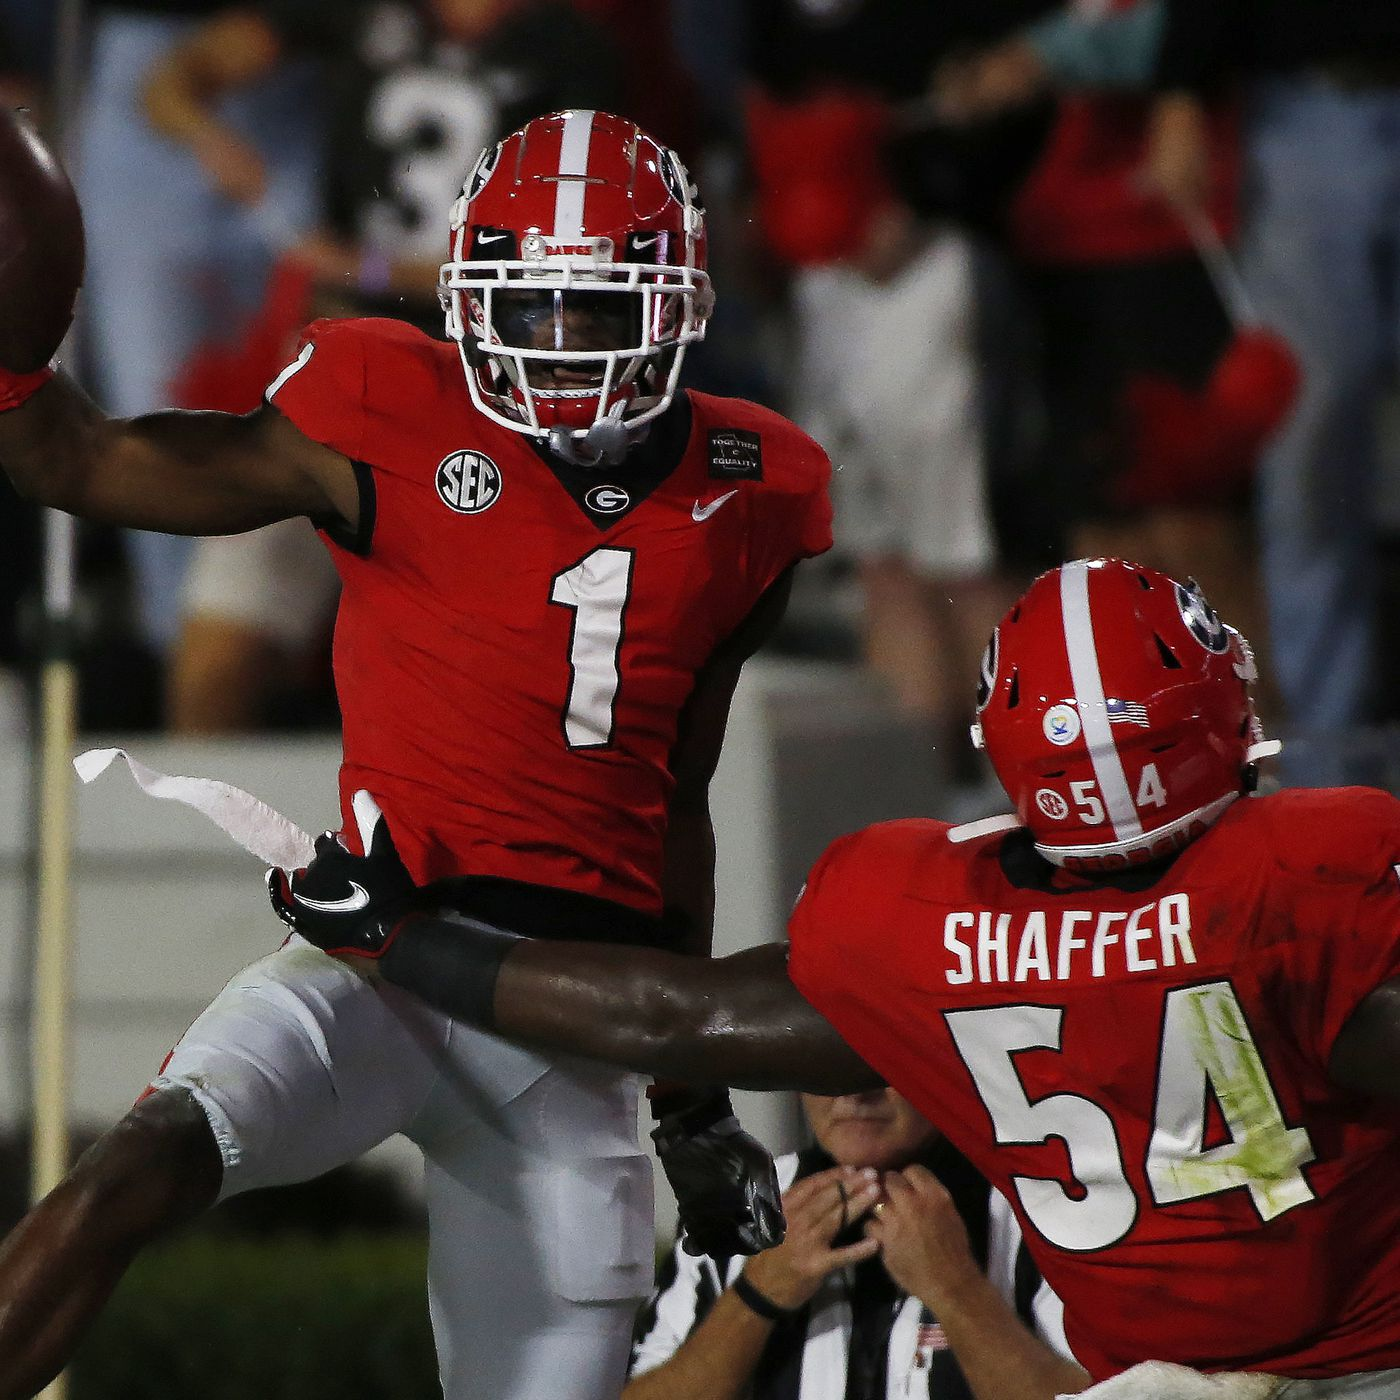 Georgia vs. Tennessee: Live stream, watch online, TV channel